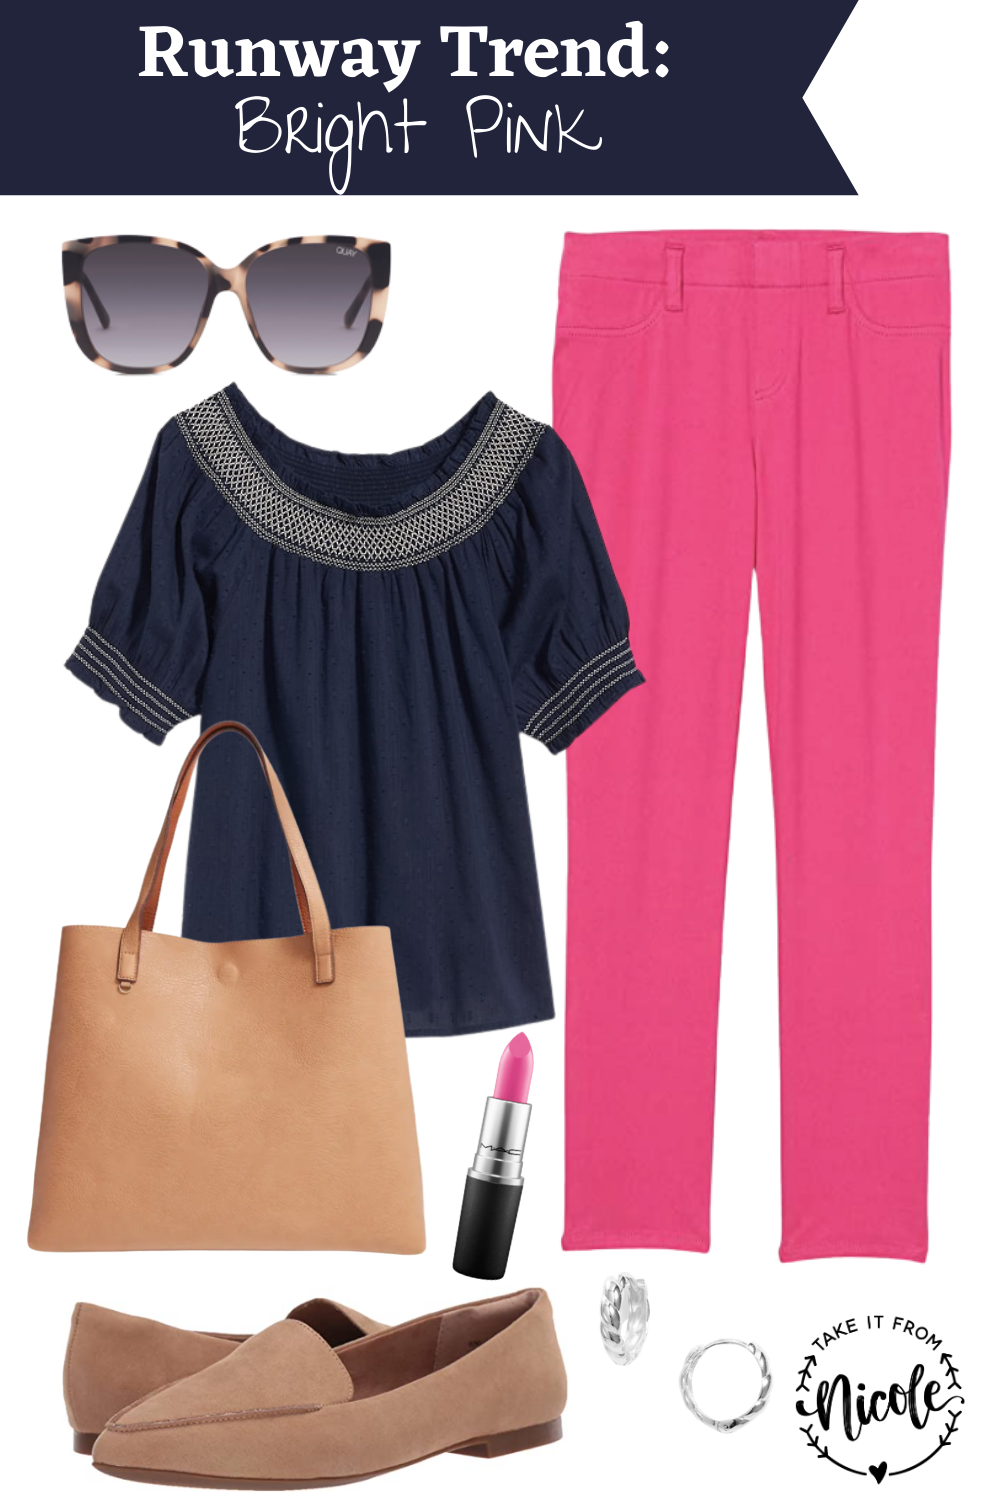 Bubblegum pink is a hot trend on the runways for Spring 2021. Here's 2 outfit ideas to incorporate it into your daily wardrobe on a budget.